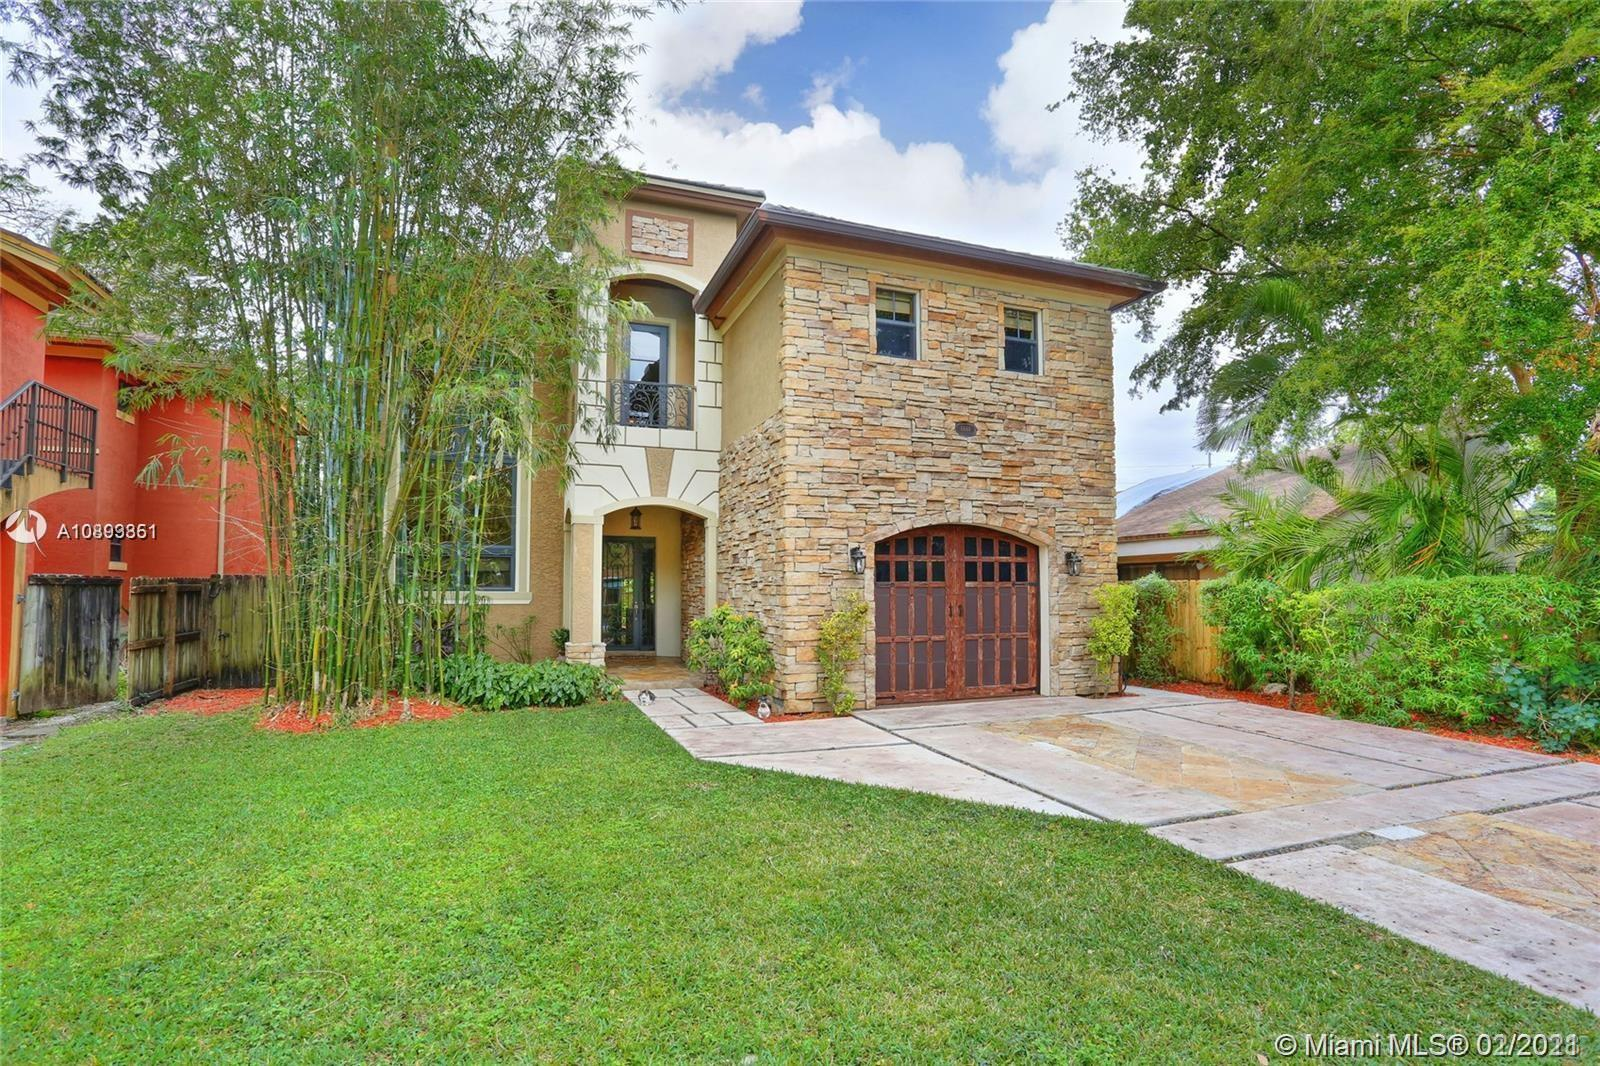 """Beautiful majestic stone clad Home in South Miami. (Smart House with everything included). Soaring living room, designer kitchen overlooking travertine patio & built in amazing hot tub. All impact windows & doors. Huge Master features balcony overlooking patio & enormous walk in closets. Unique, high-end finishes: onyx topped vanities in baths, exotic imported wood & marbles, beautifully detailed iron railings, marble & wood floors. All bedrooms have en-suite baths. Chef's kitchen w/5 burner gas range; electric double ovens, new Bosch dishwasher, Electrolux refrigerator, Franke sink, 2 AC zones. Lovely details include amazing built-ins throughout. one-car garage with electric door opener. This beautiful and """"smart home"""" is perfect for family get togethers and entertaining. Perfect location"""